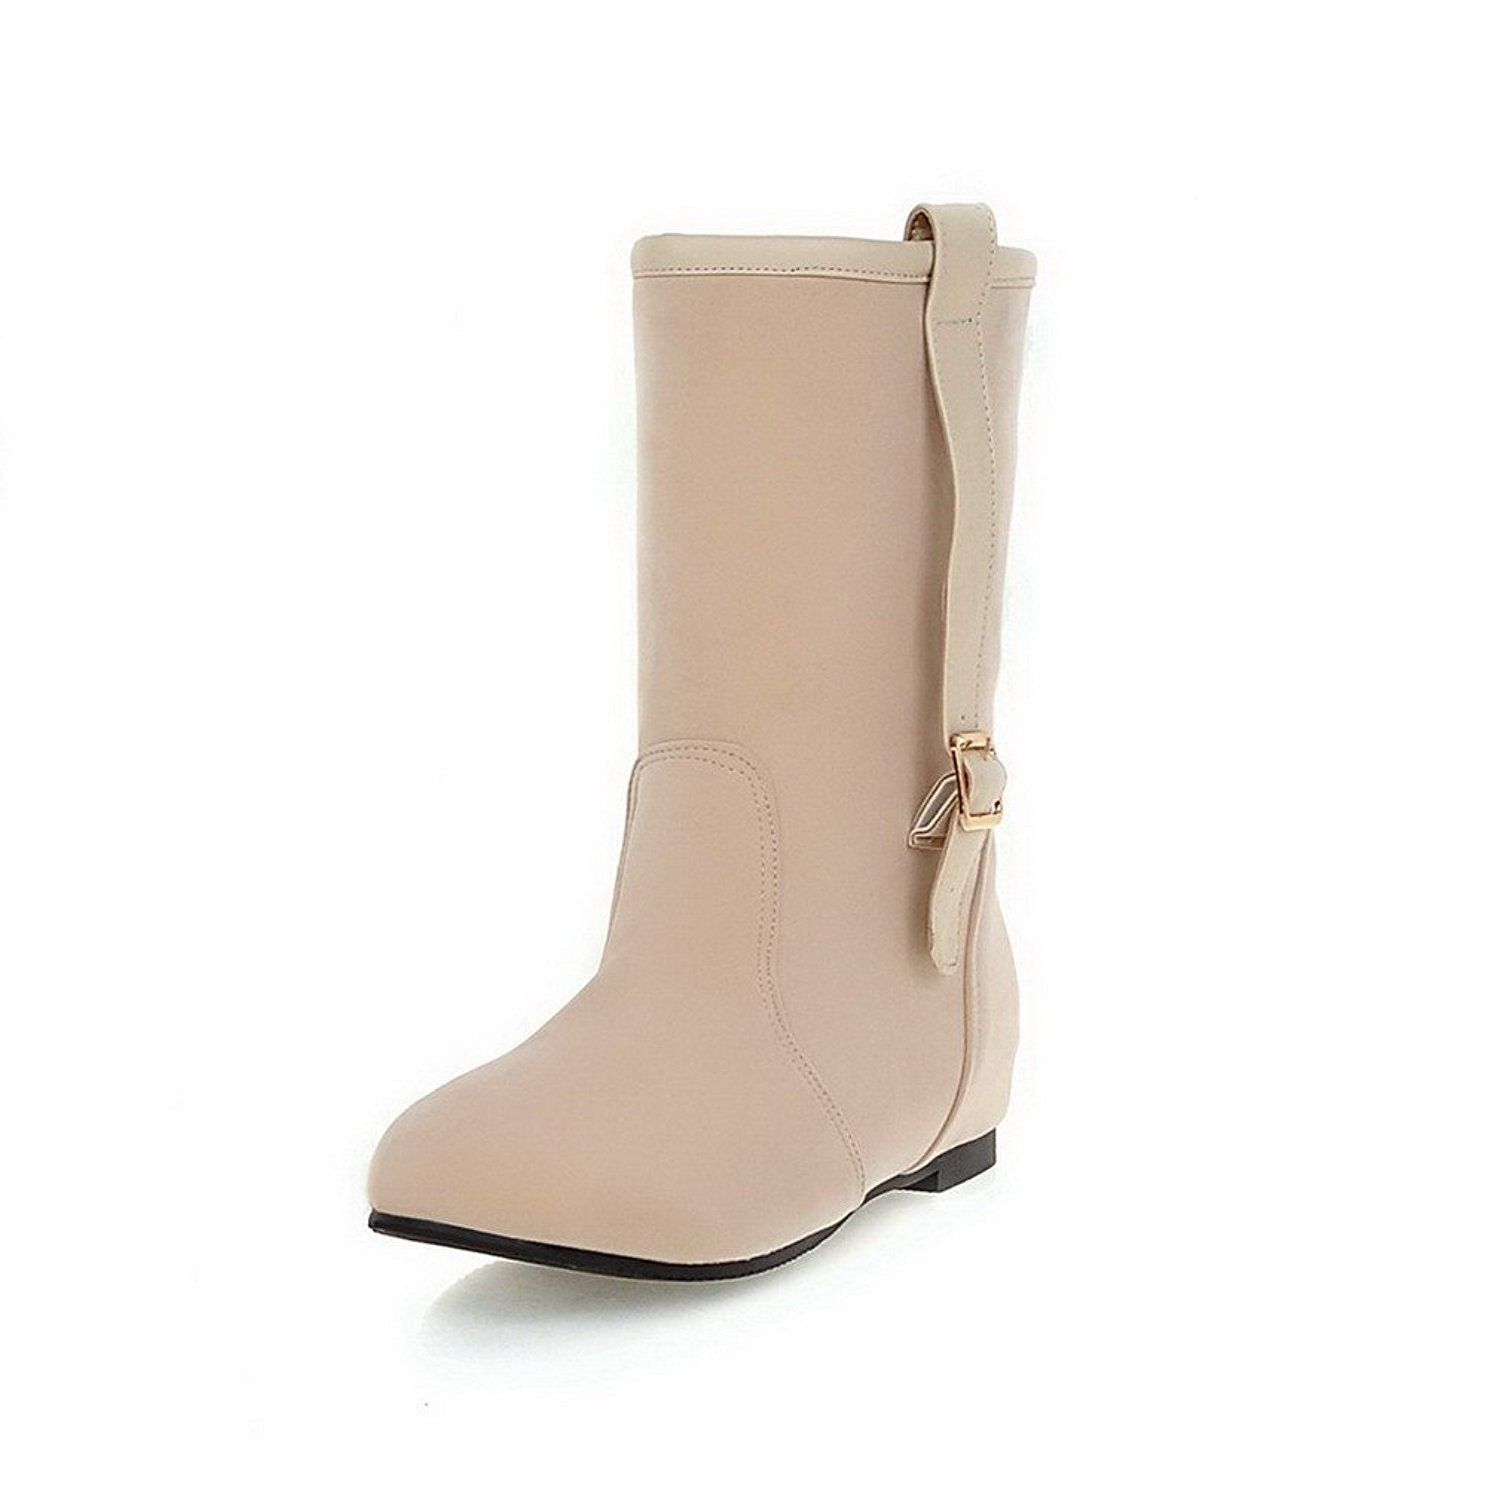 AmoonyFashion Women's Low-Heels Solid Round Closed Toe Frosted Pull-on Boots * Be sure to check out this awesome product.